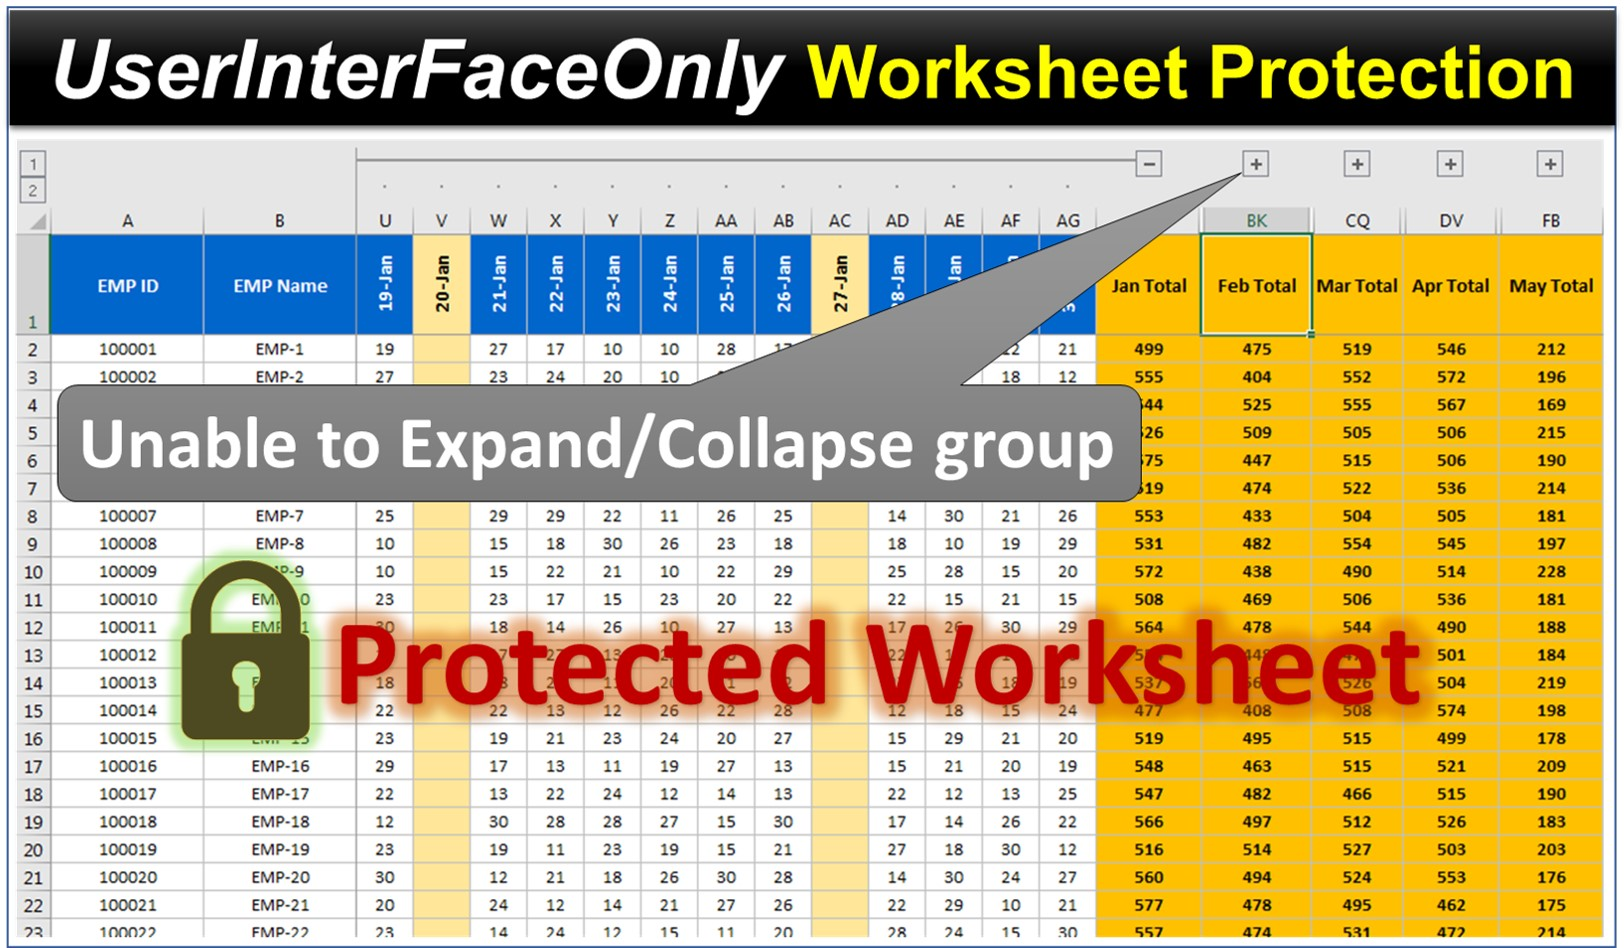 Protect Excel Worksheet As Userinterfaceonly